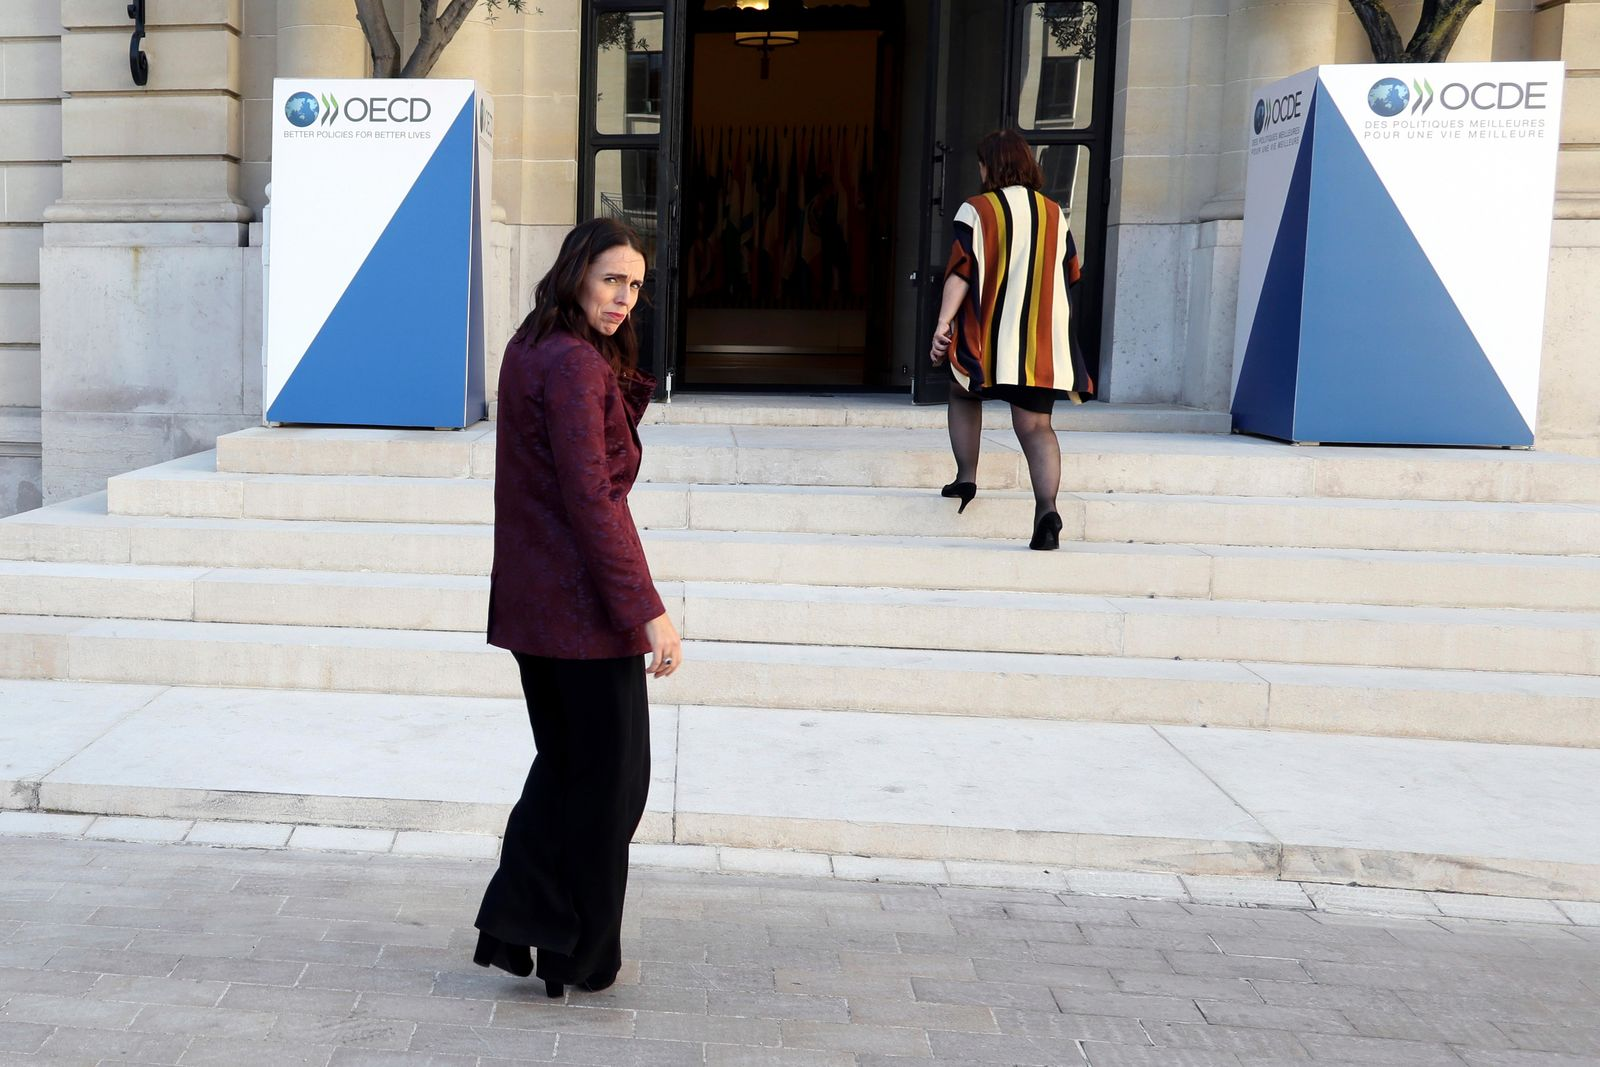 New Zealand Prime Minister Jacinda Ardern, left, leaves after a press conference, at the OECD headquarters, in Paris, Tuesday, May 14, 2019.{ } (AP Photo/Thibault Camus)